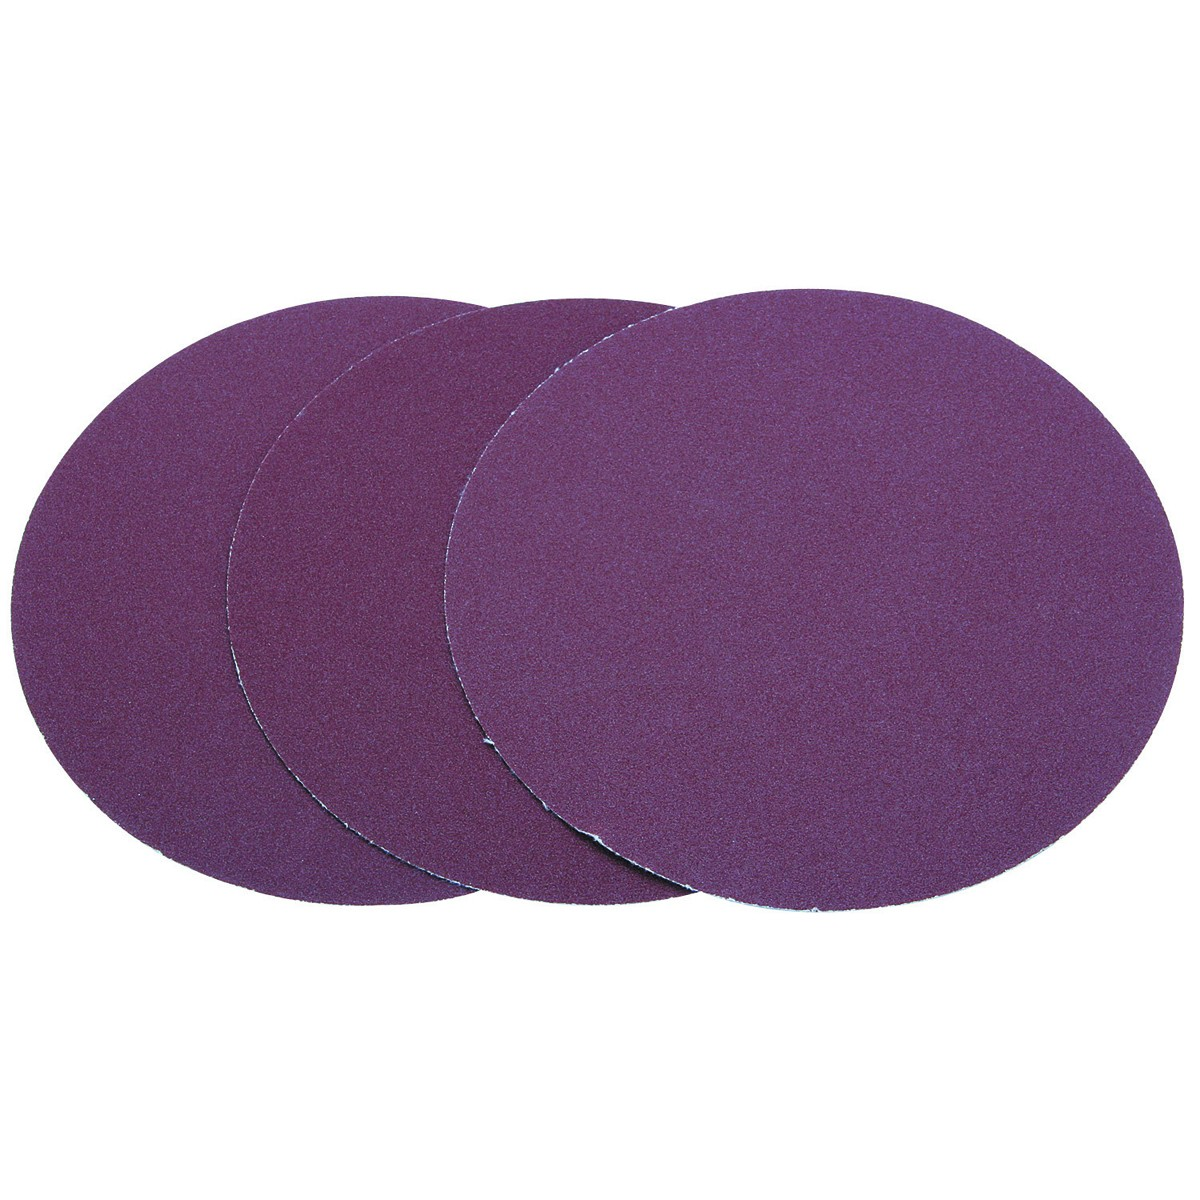 7 in. 150 Grit Sanding Discs 3 Pc